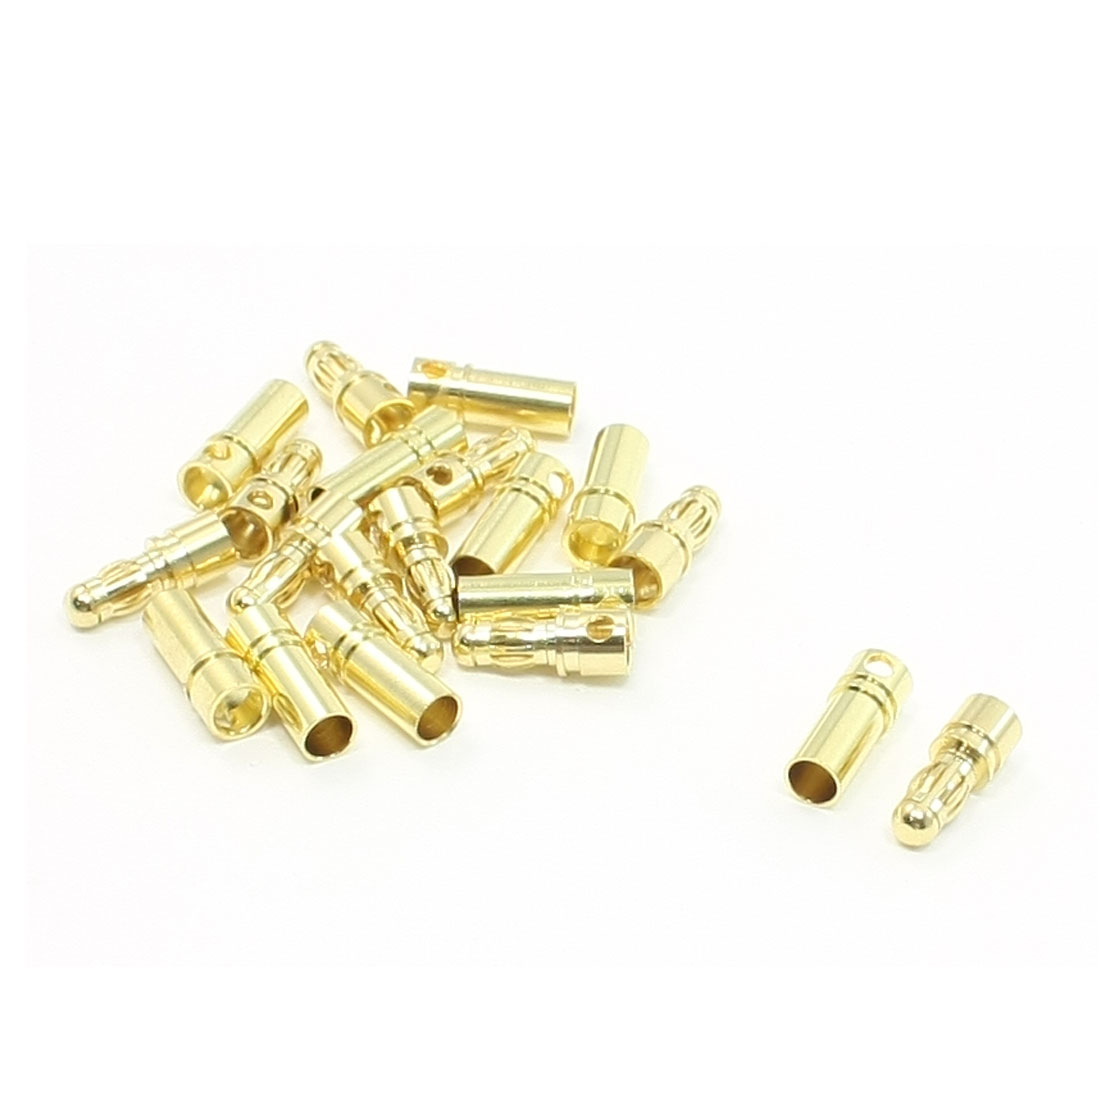 10 Pairs Gold Tone Metal Banana Plug Male Female Connector 3.5mm